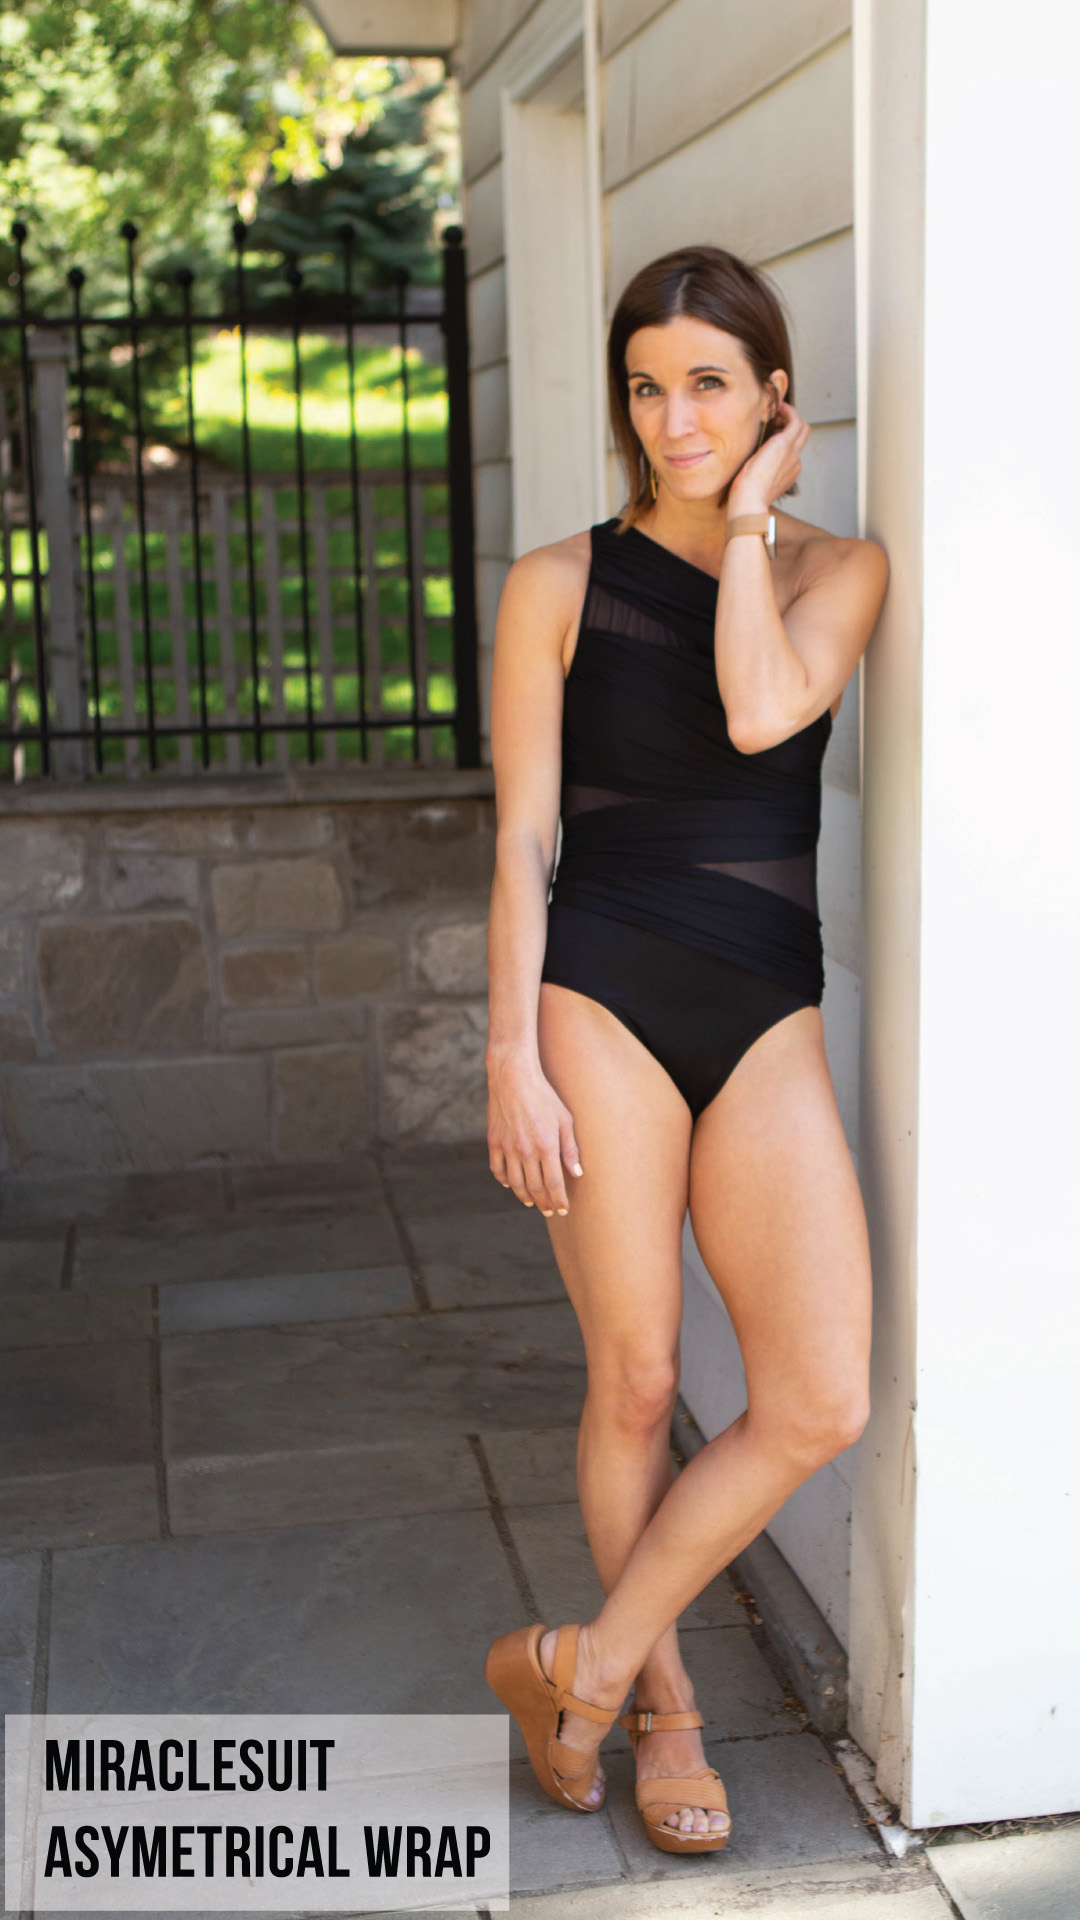 Runtlly Asymmetrical Wrap One-Piece Swimsuit